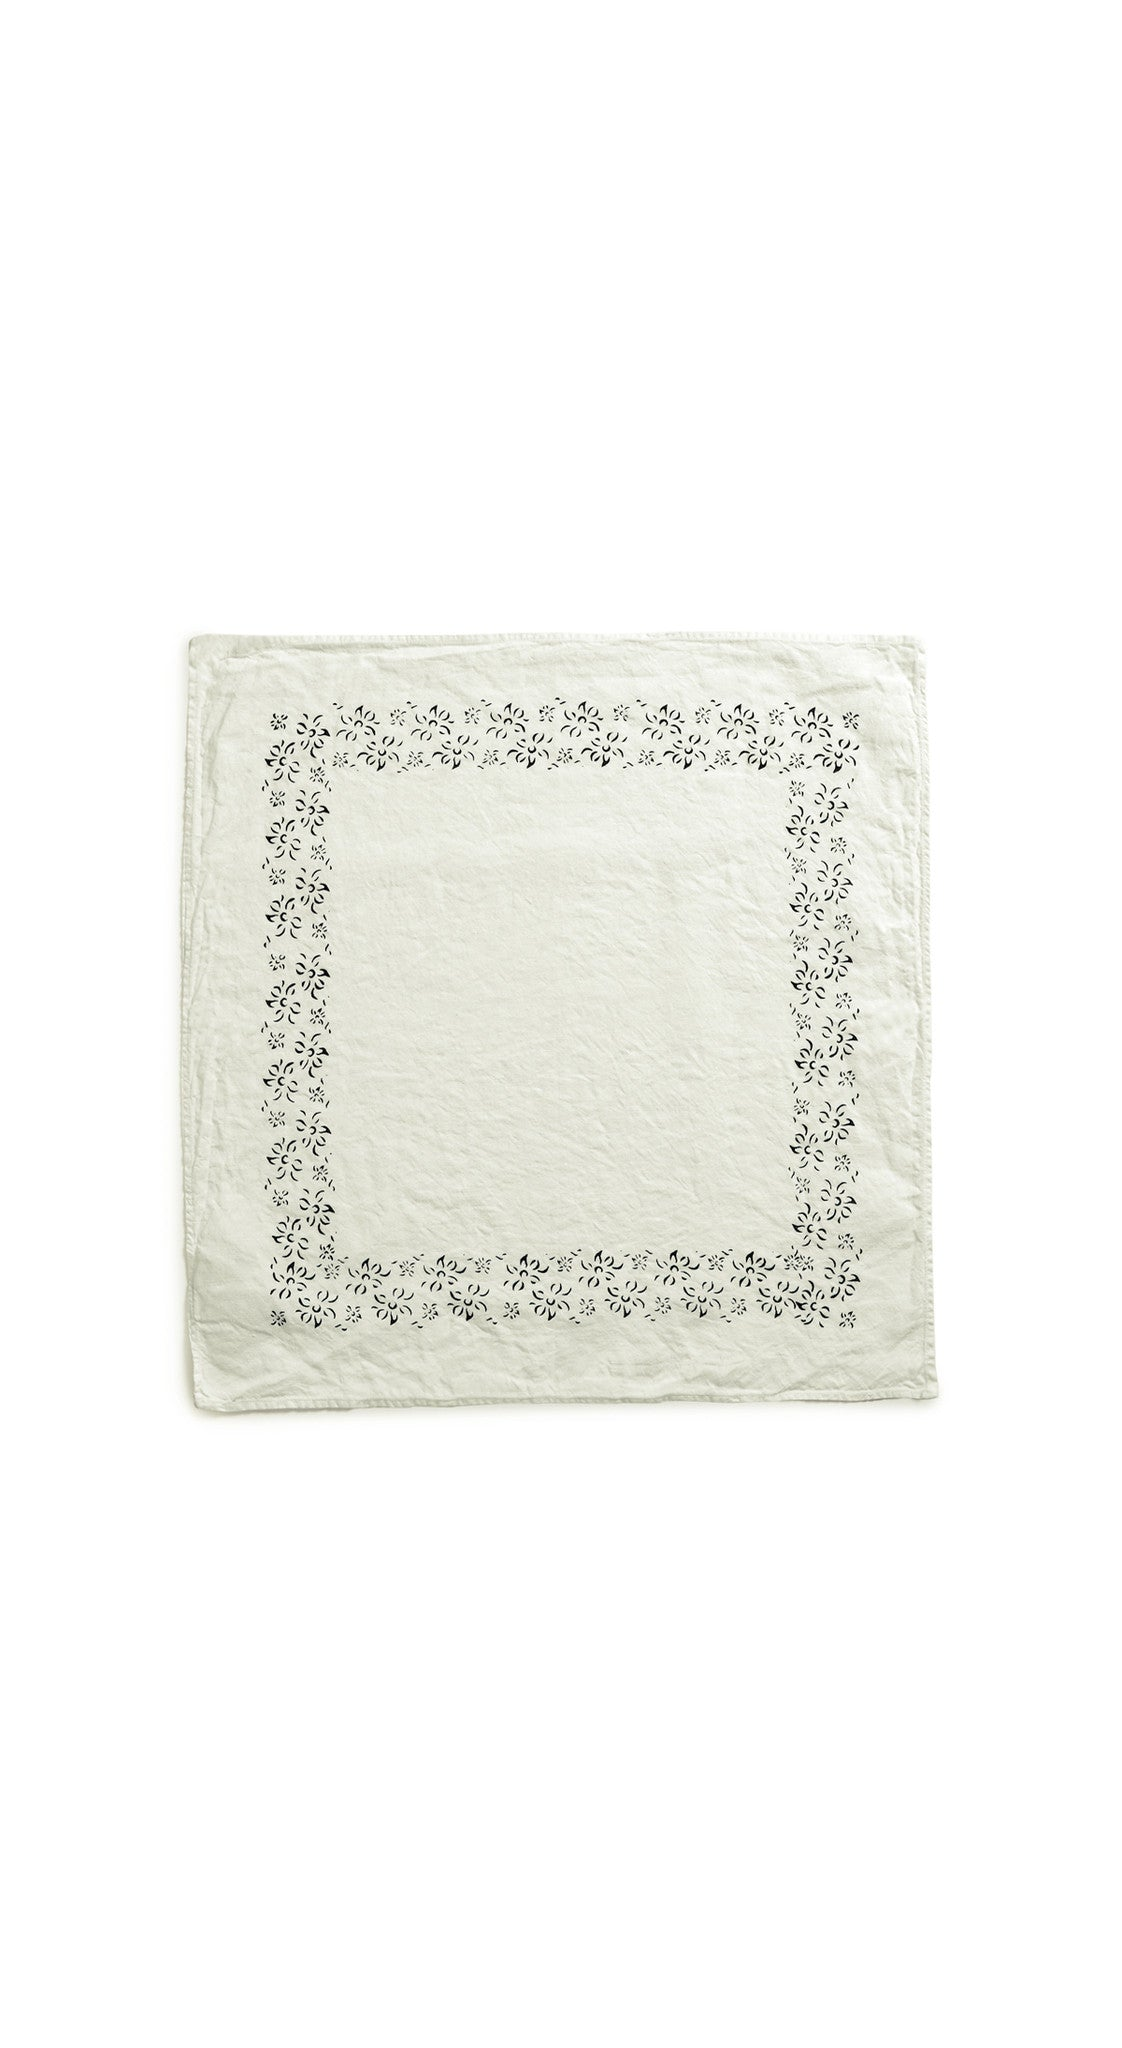 Bernadette's Framed Flower Linen Napkin in Forest Green